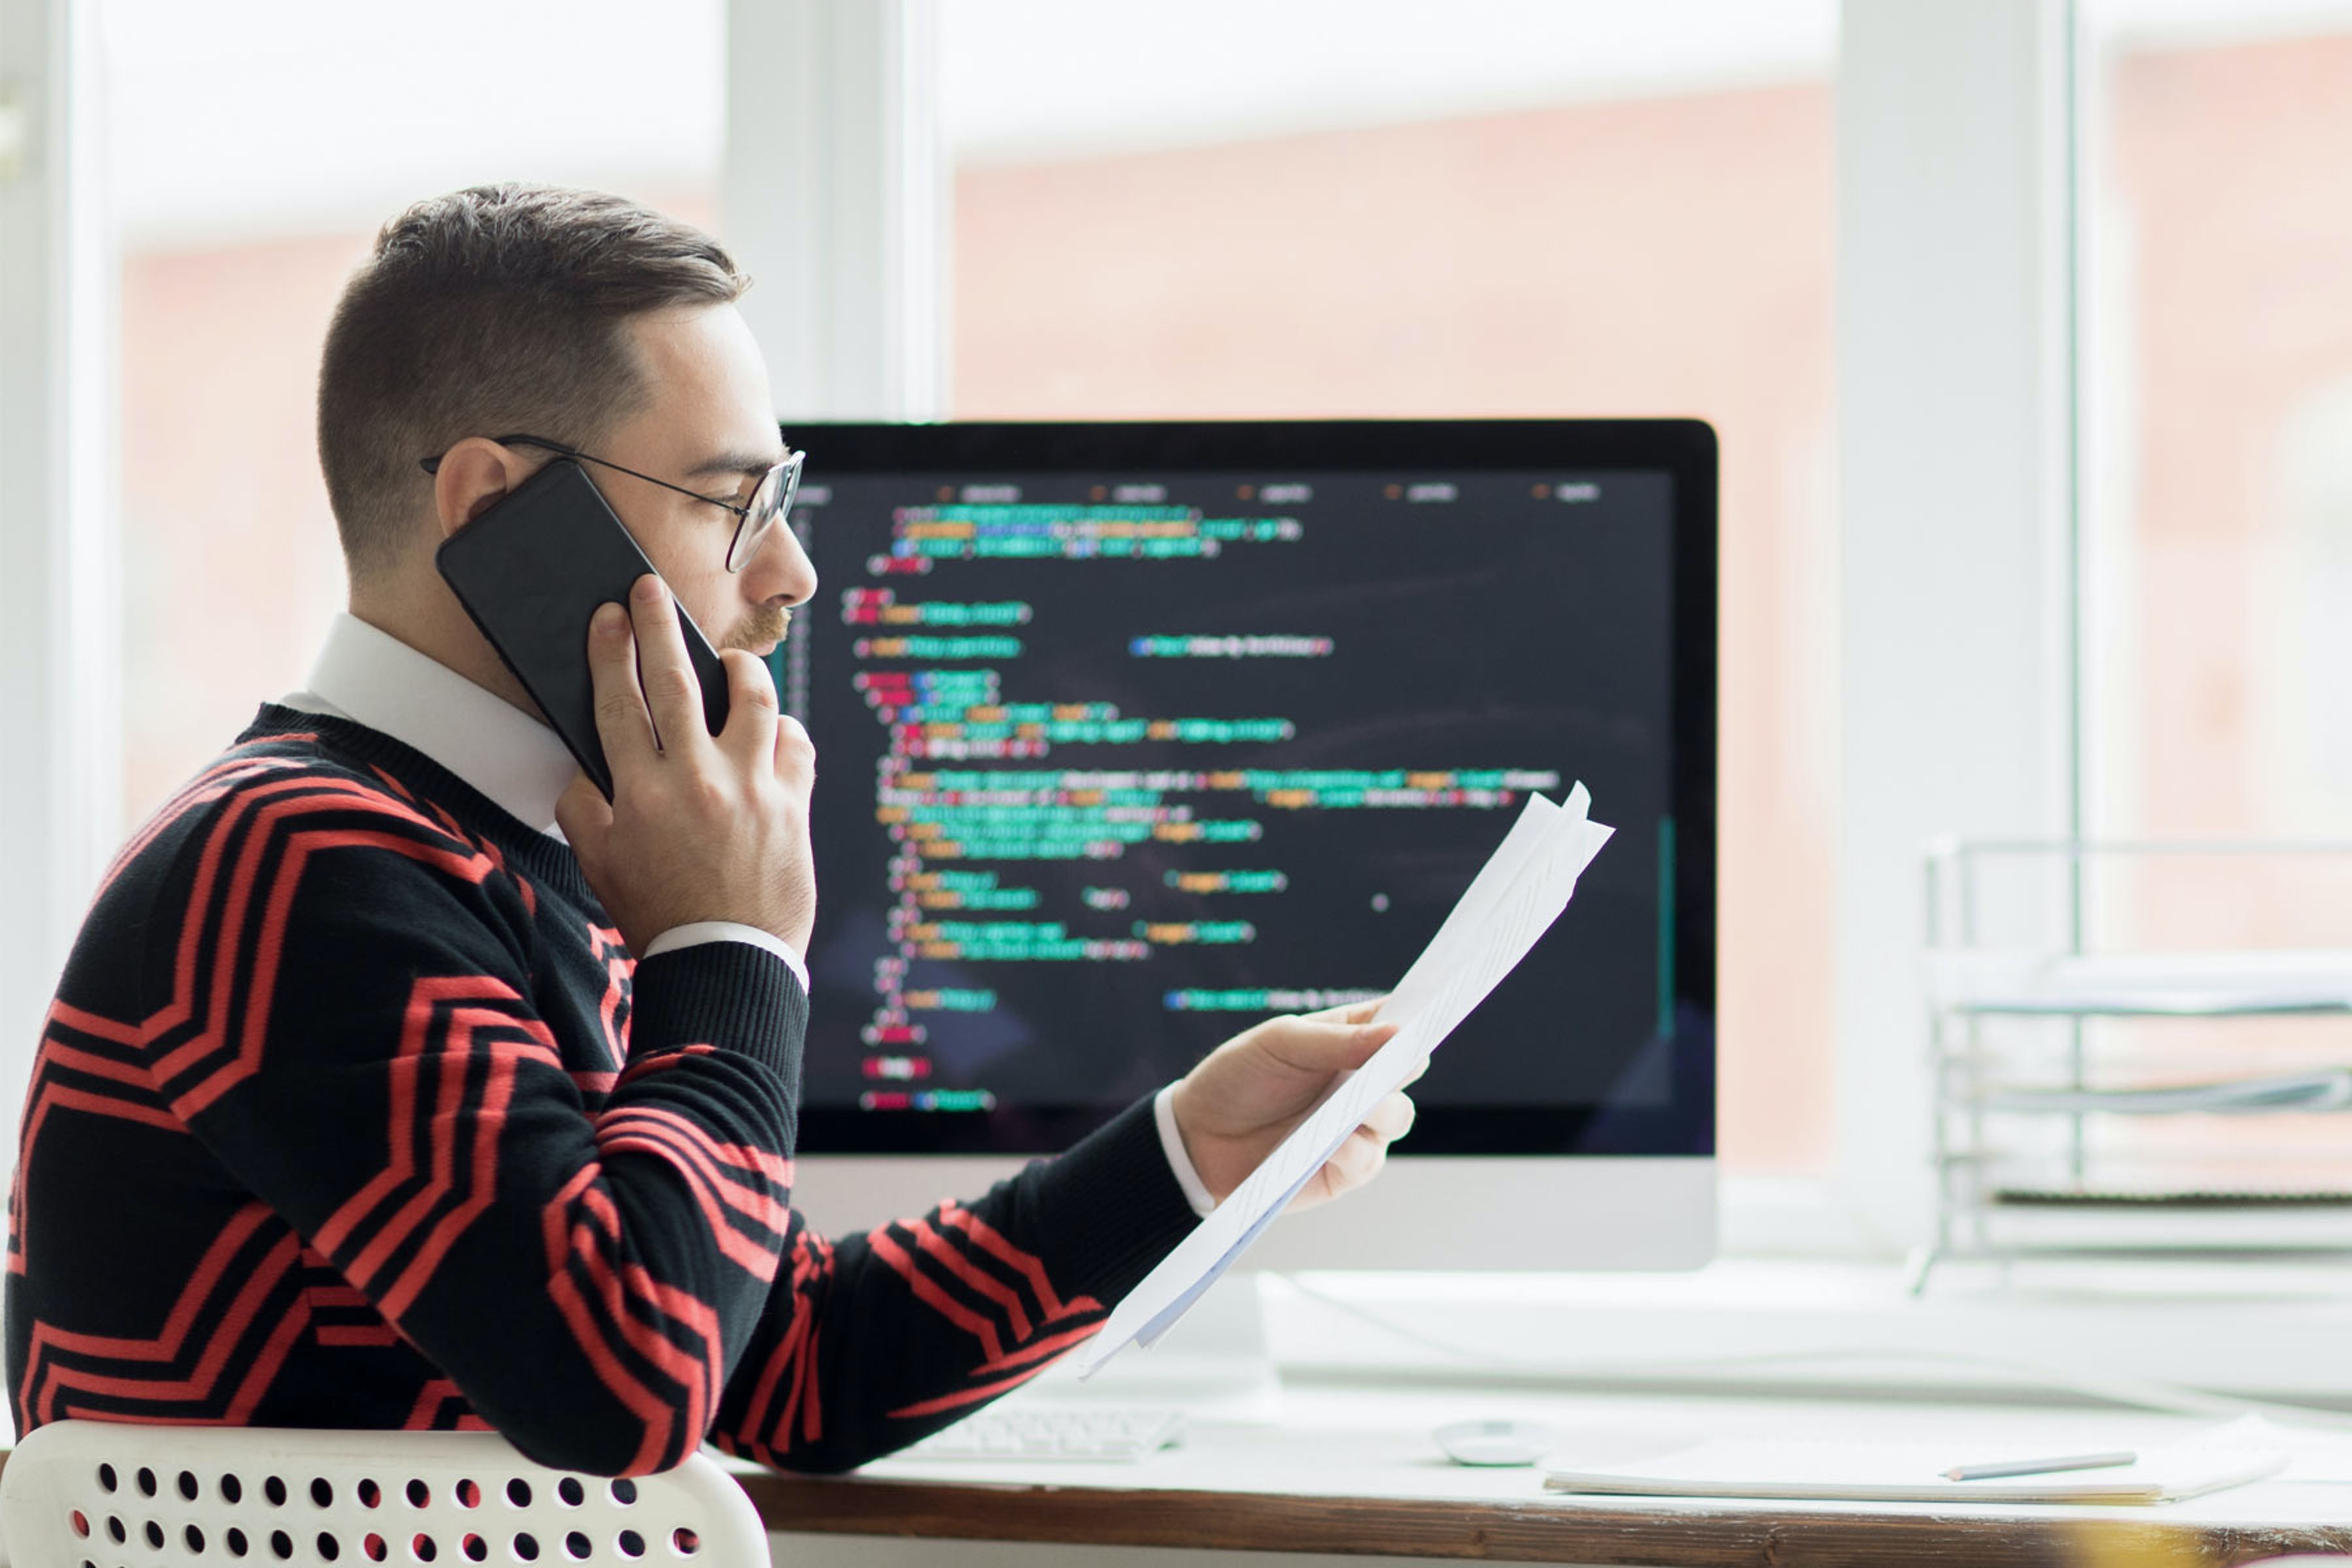 employee on phone looking at document next to computer with code on screen